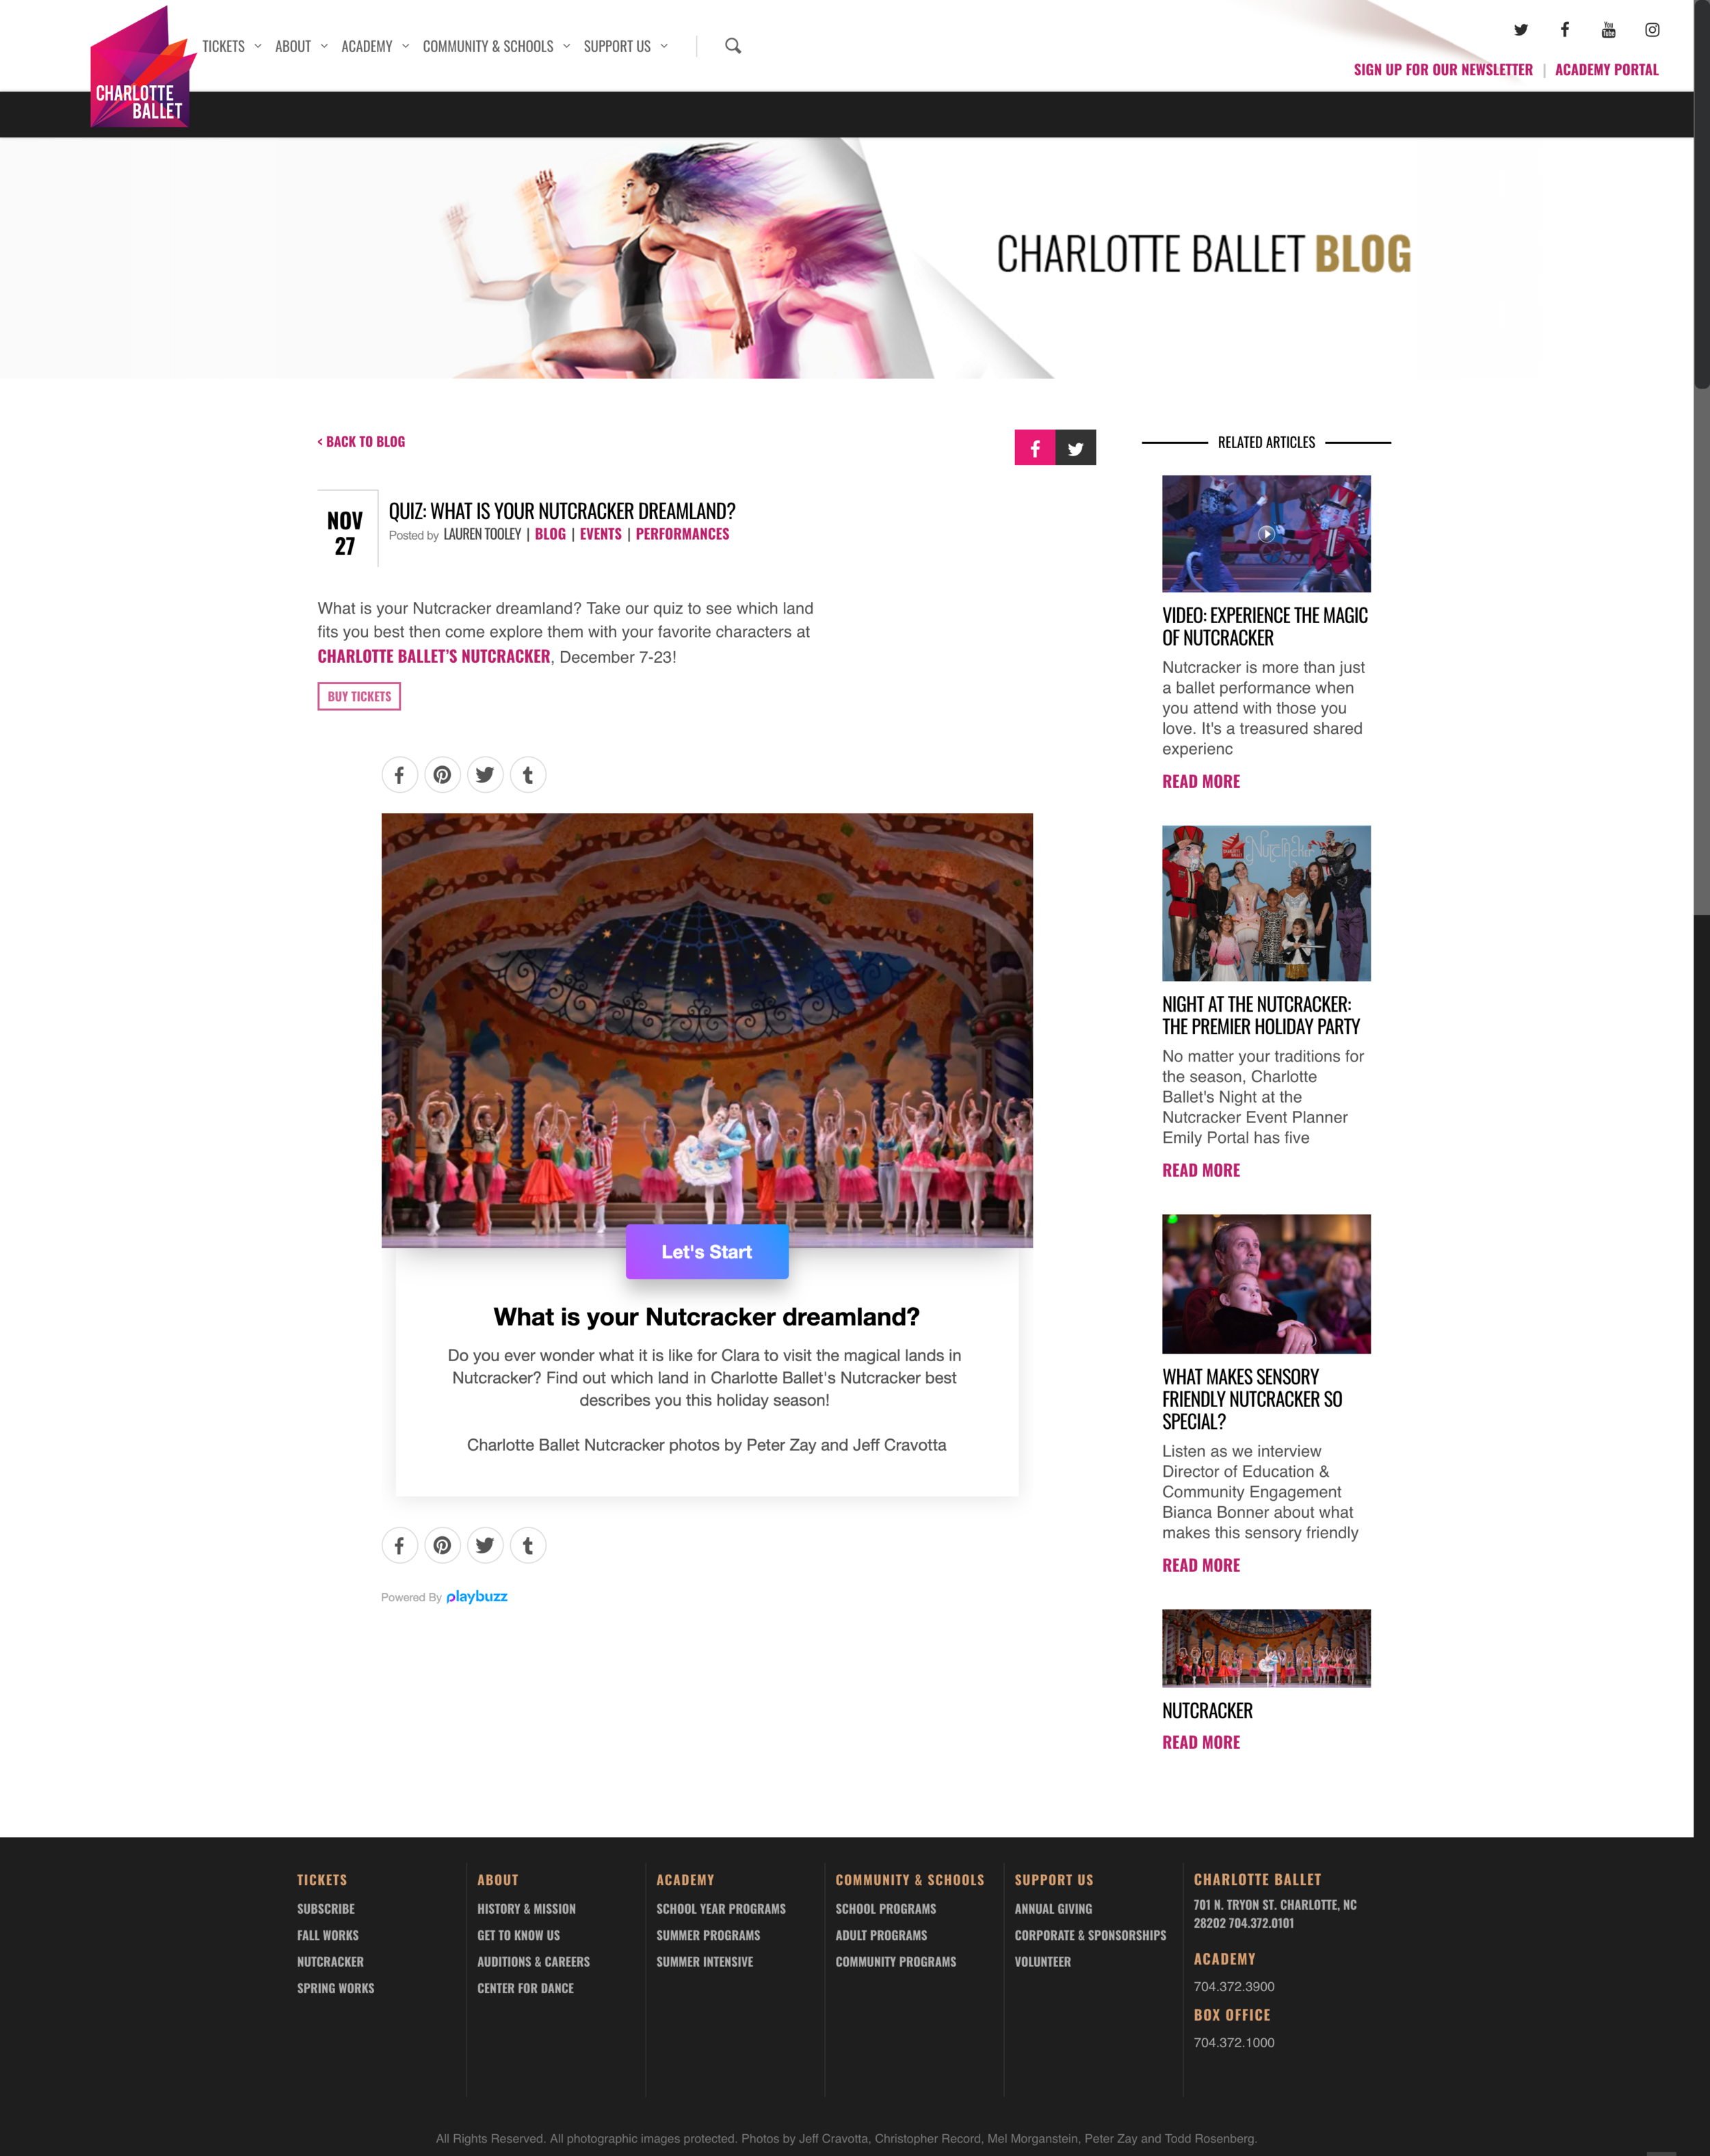 screencapture-charlotteballet-org-quiz-what-is-your-nutcracker-dreamland-2019-04-14-12_19_48.png